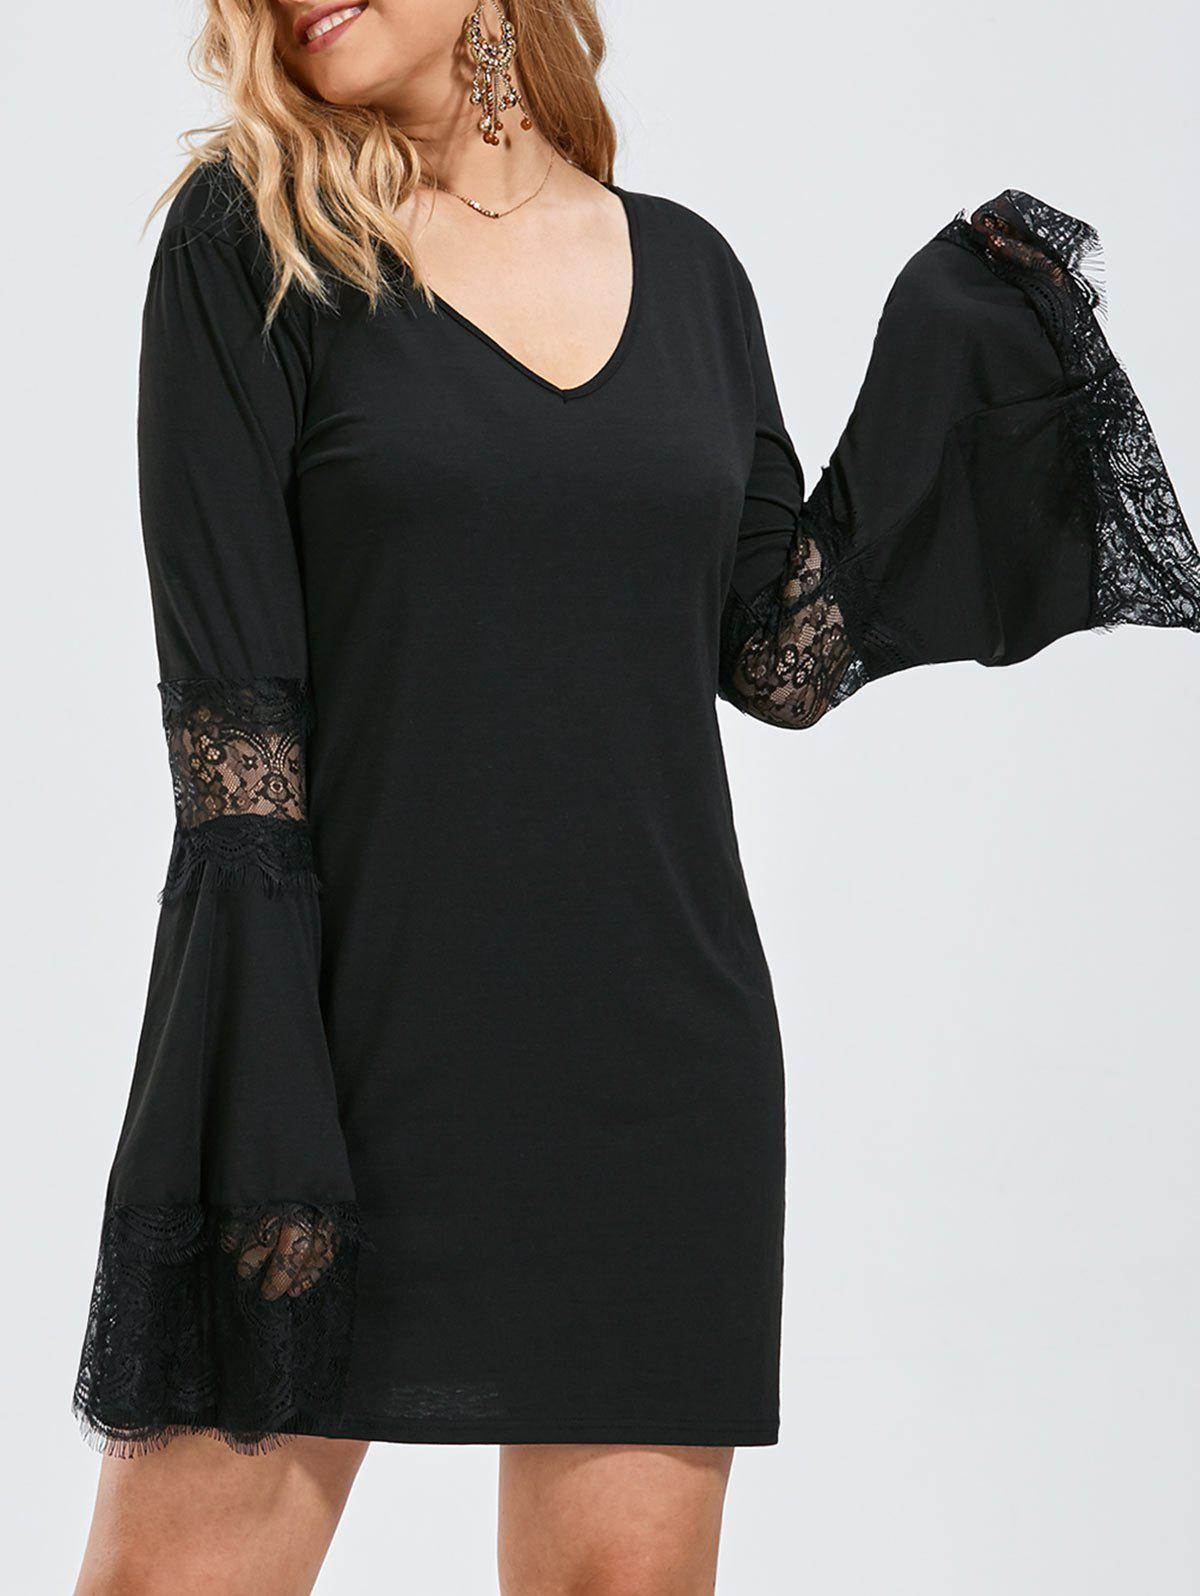 Plus Size  Bell Sleeve Lace Crochet Panel Tee Dress sheer lace panel plus size leggings